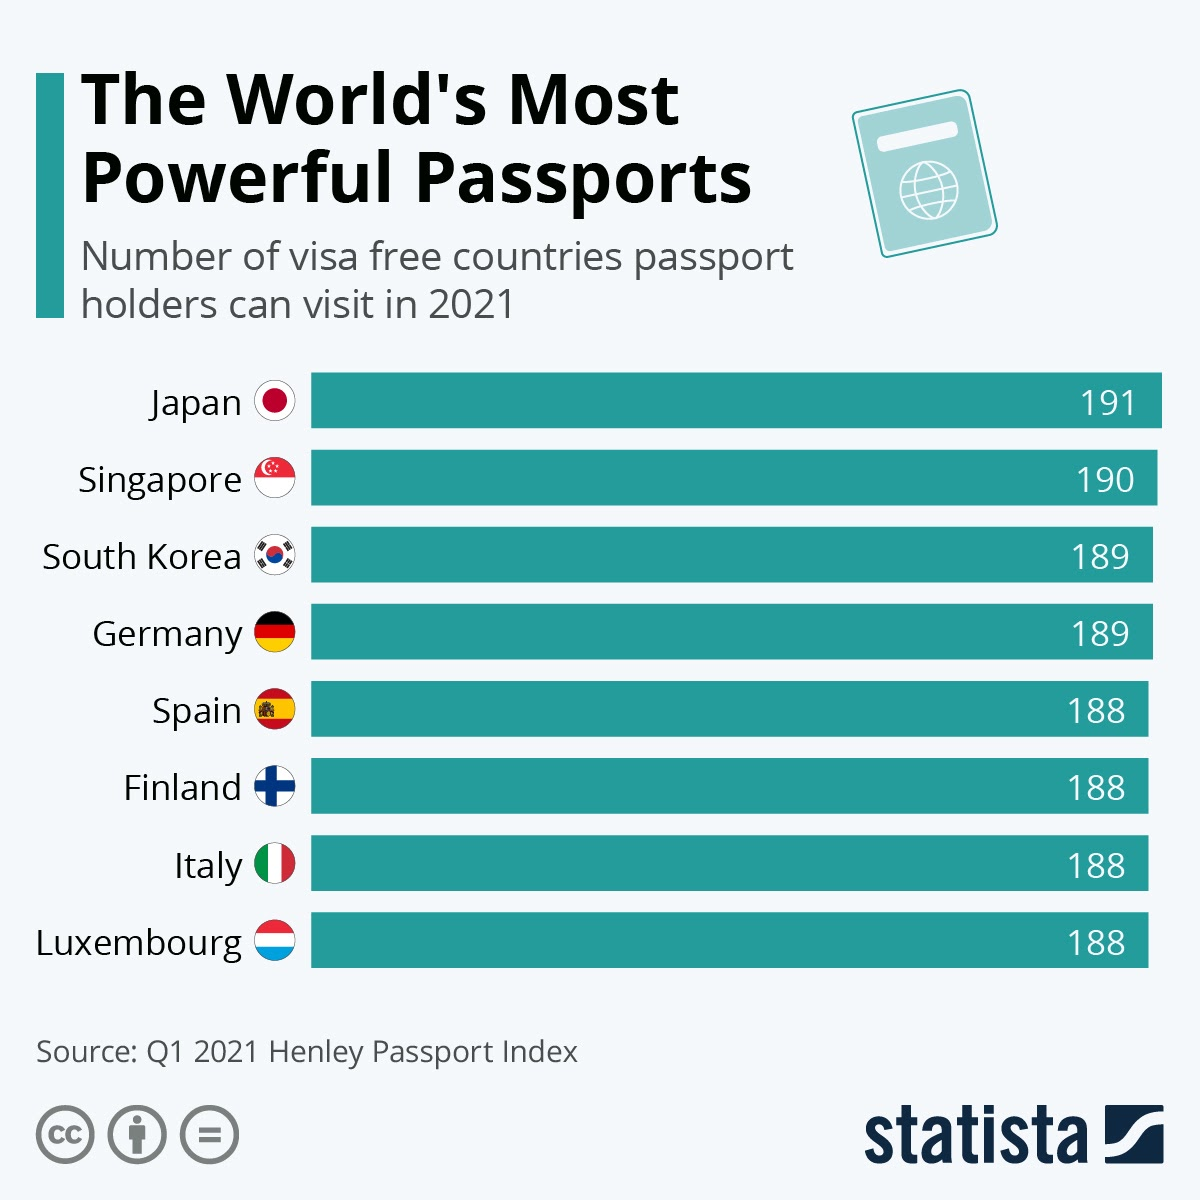 the-worlds-most-powerful-passports-infographic